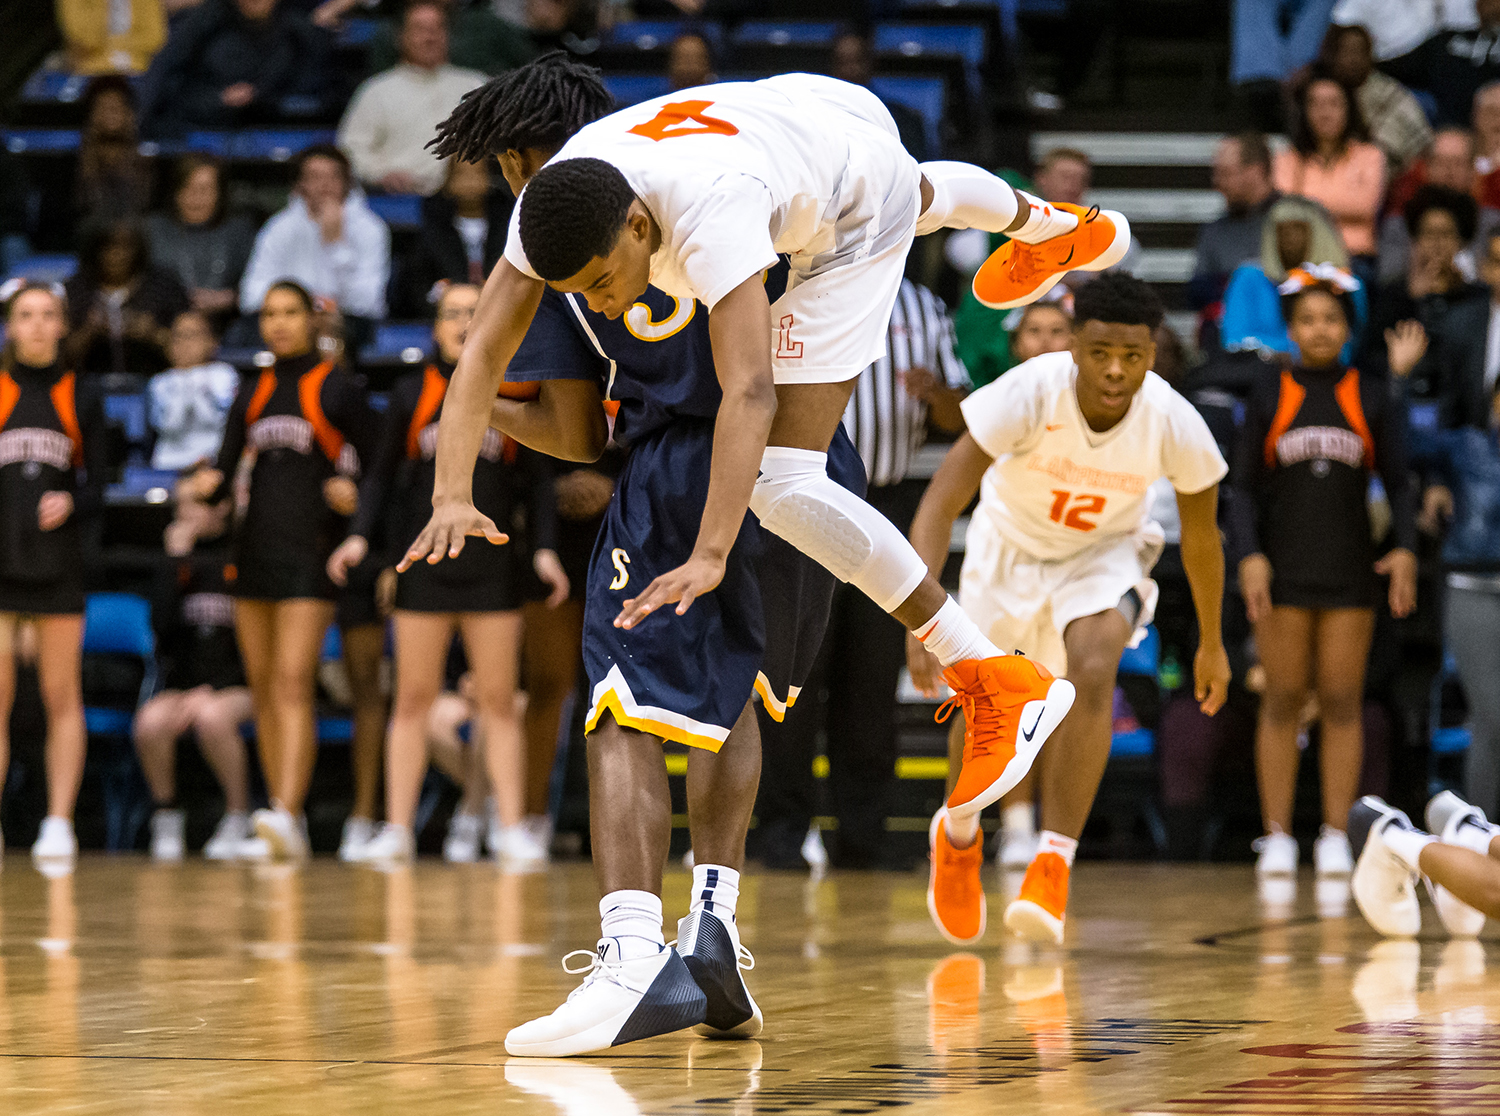 Lanphier's Larry Hemingway (4) flies over Southeast's Stepheon Sims (32) as he stops in his tracks in the first quarter on opening night of the Boys City Tournament at the Bank of Springfield Center, Wednesday, Jan. 16, 2019, in Springfield, Ill. [Justin L. Fowler/The State Journal-Register]